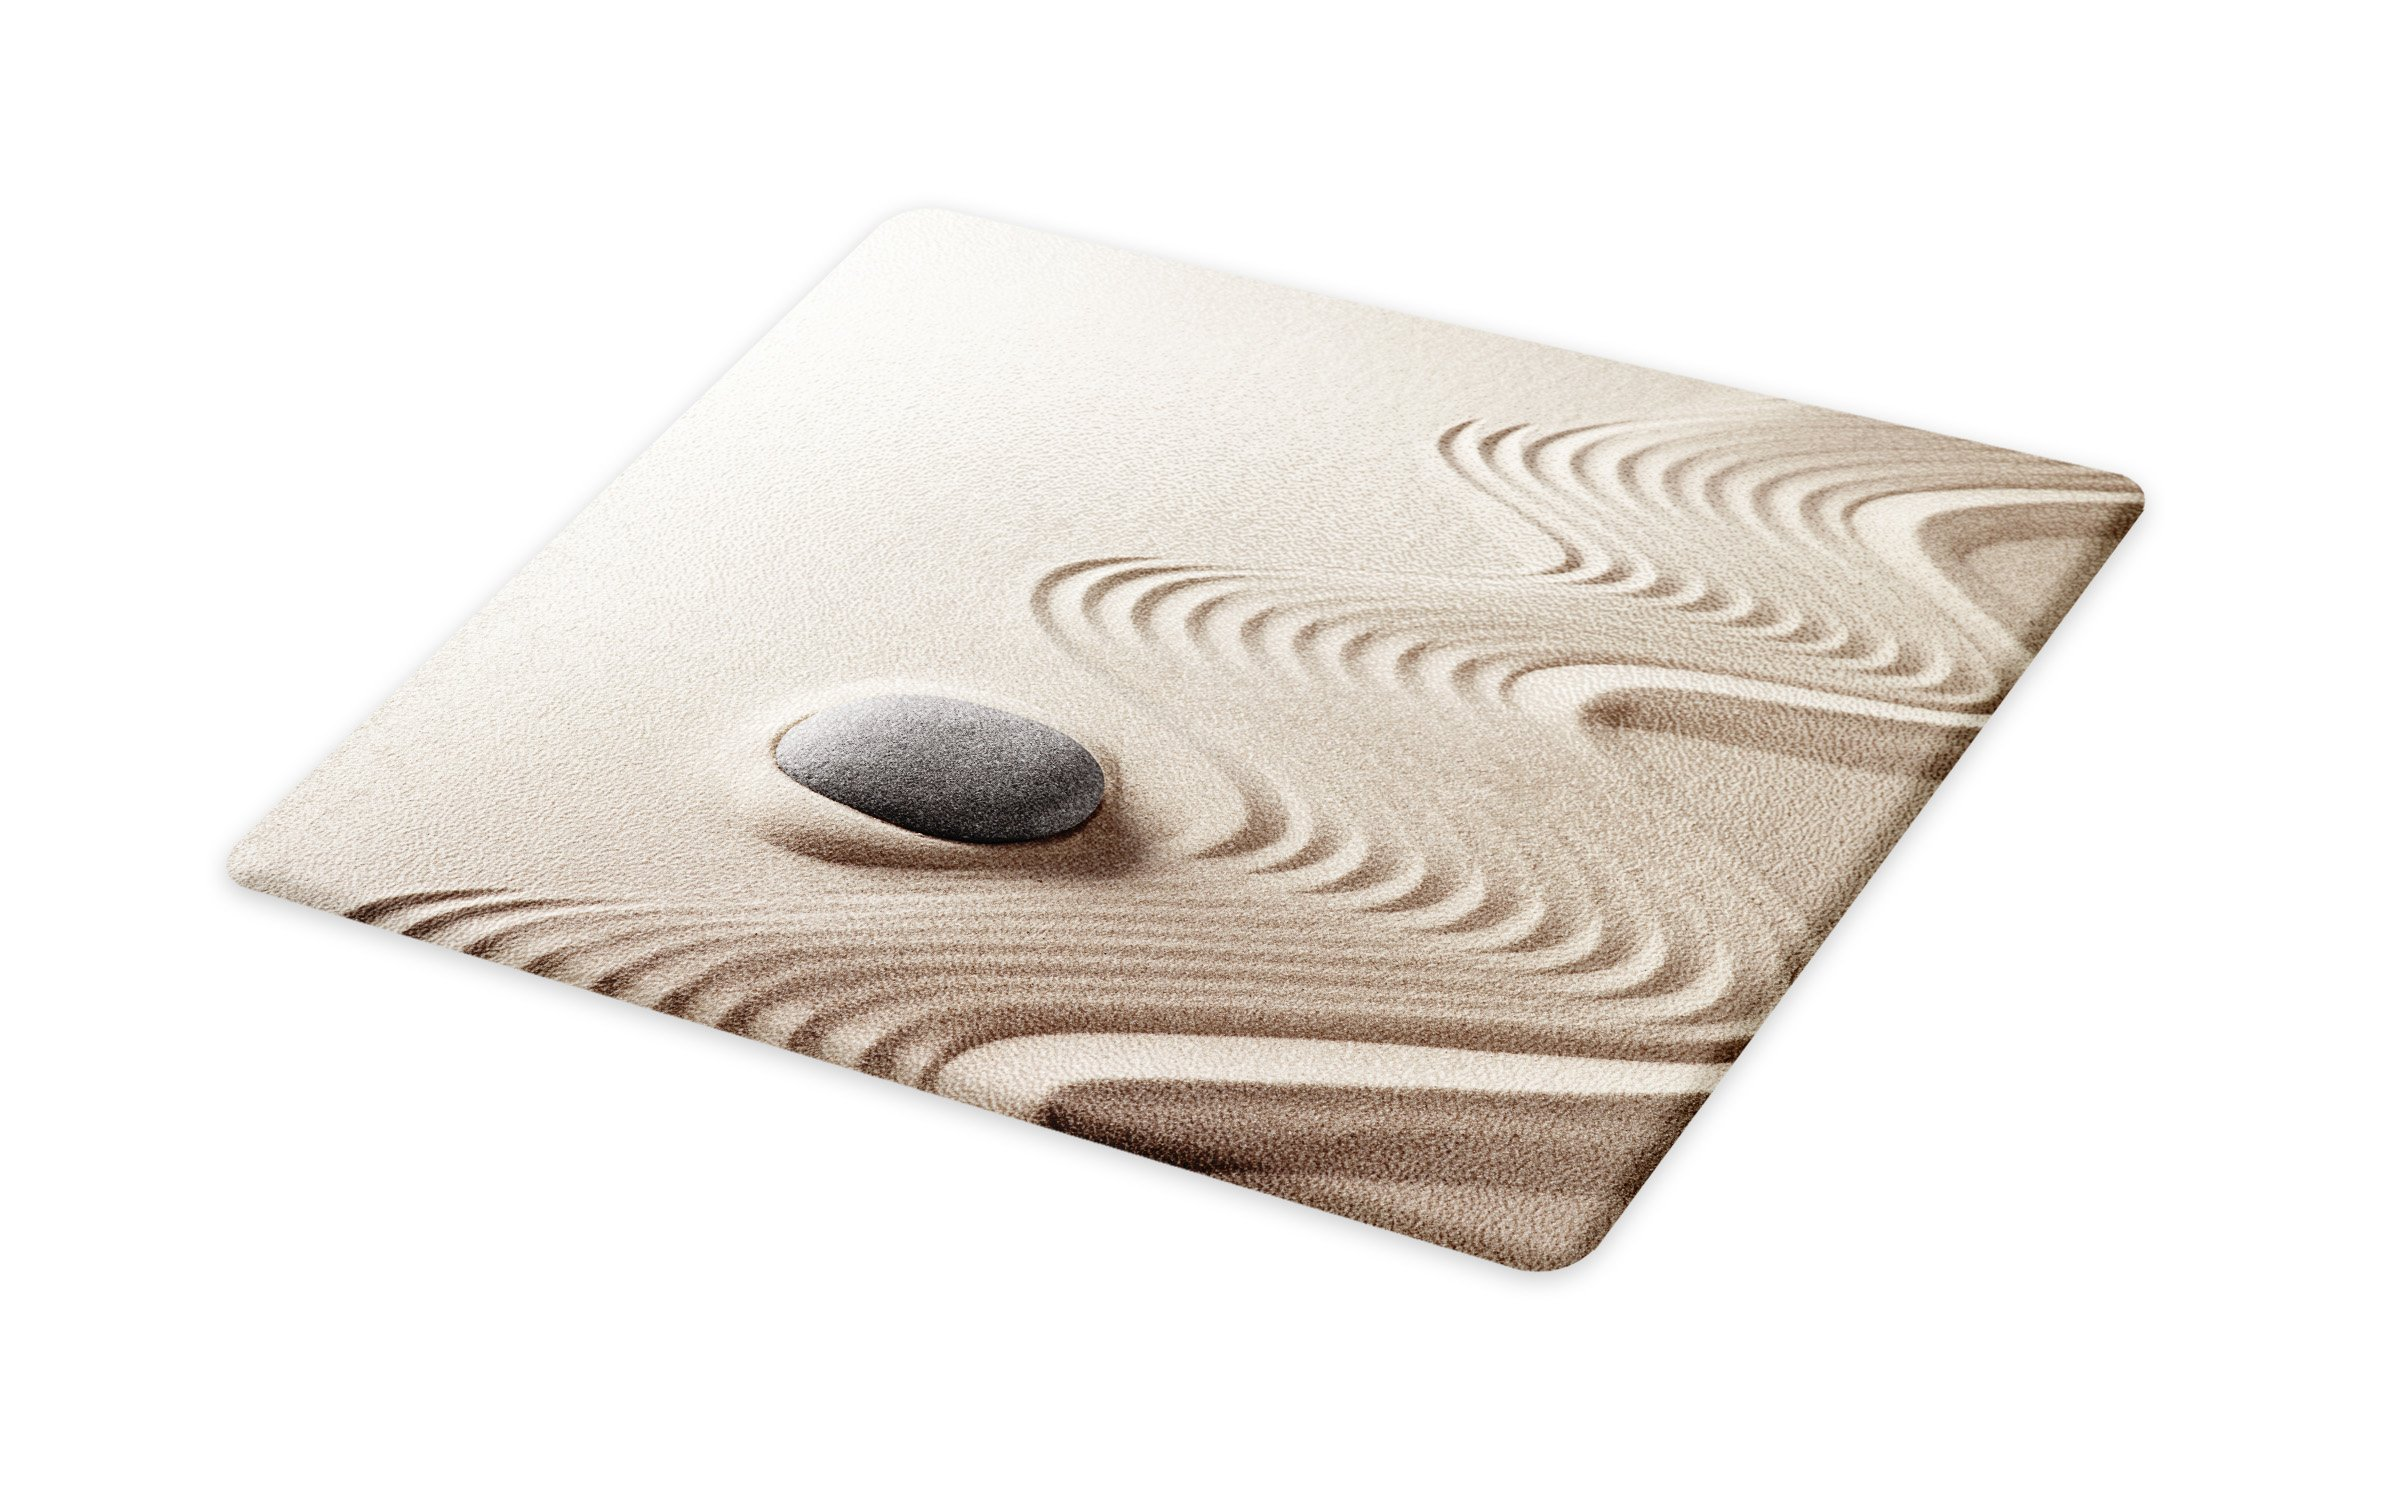 Lunarable Spa Cutting Board, The Caribbean White Sand in Shaped Like Waves Near a Grey Zen Stones Work of Art, Decorative Tempered Glass Cutting and Serving Board, Large Size, Green and White